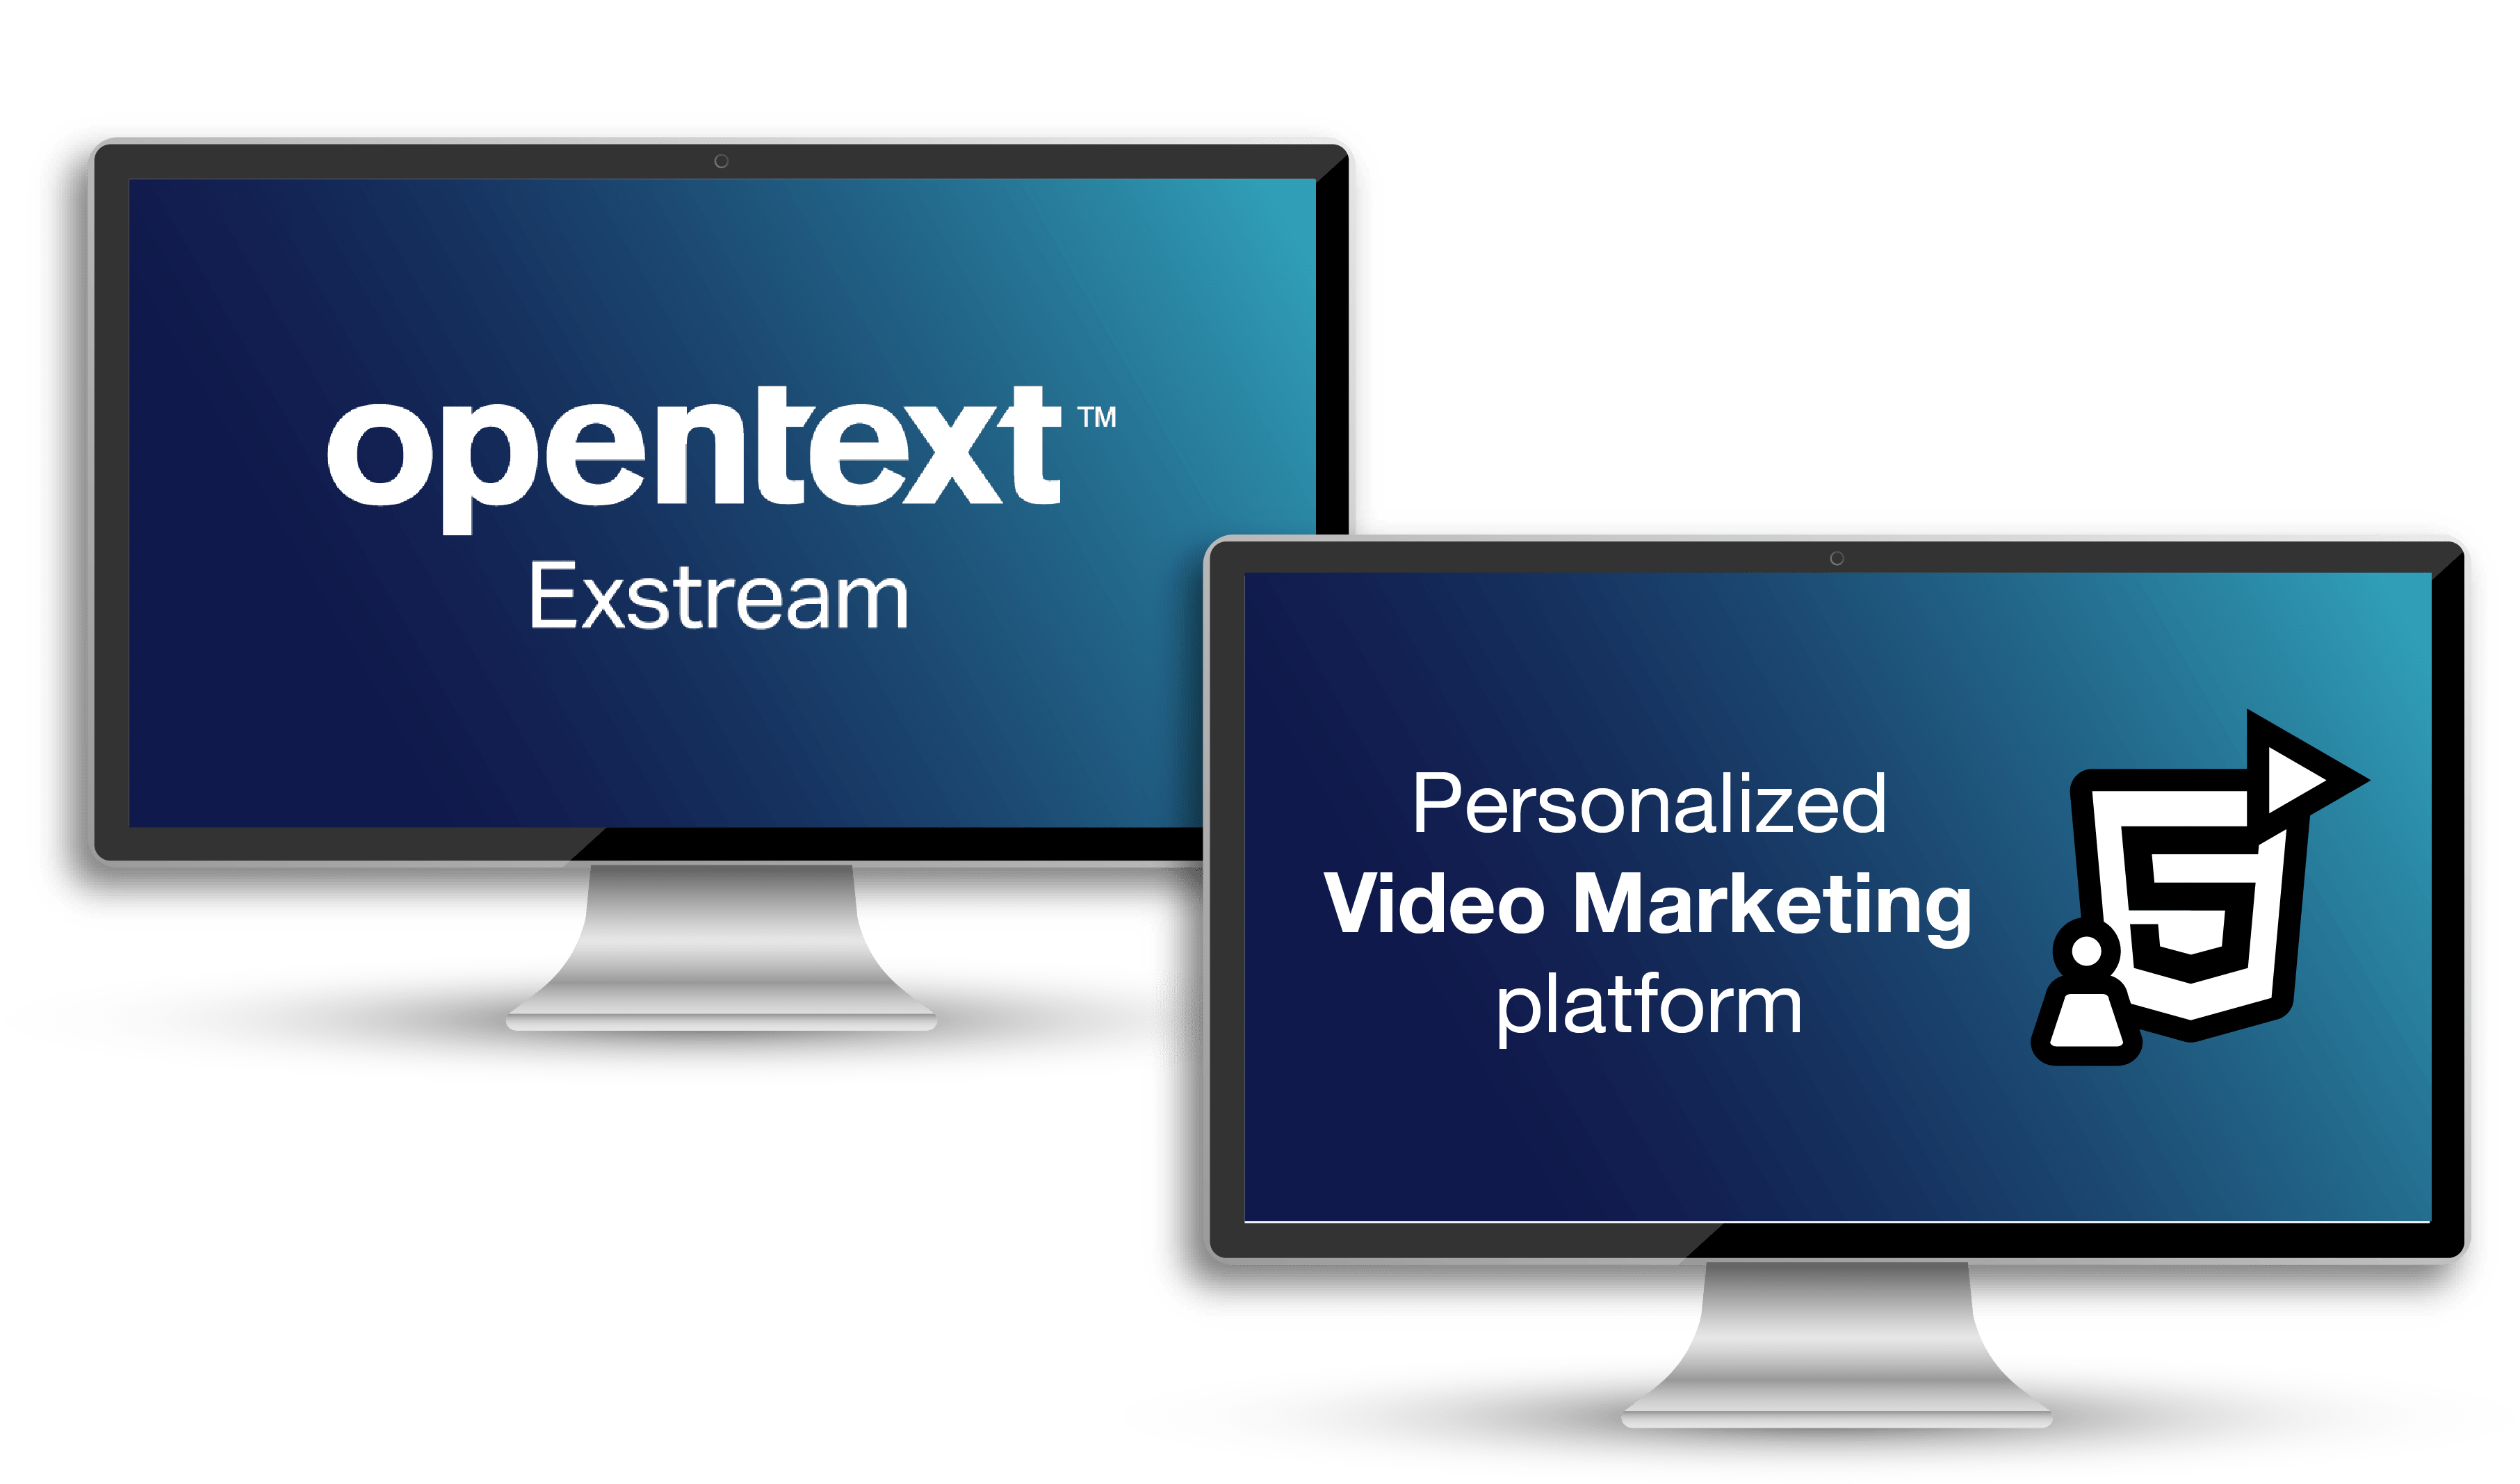 Personalized Video for OpenText